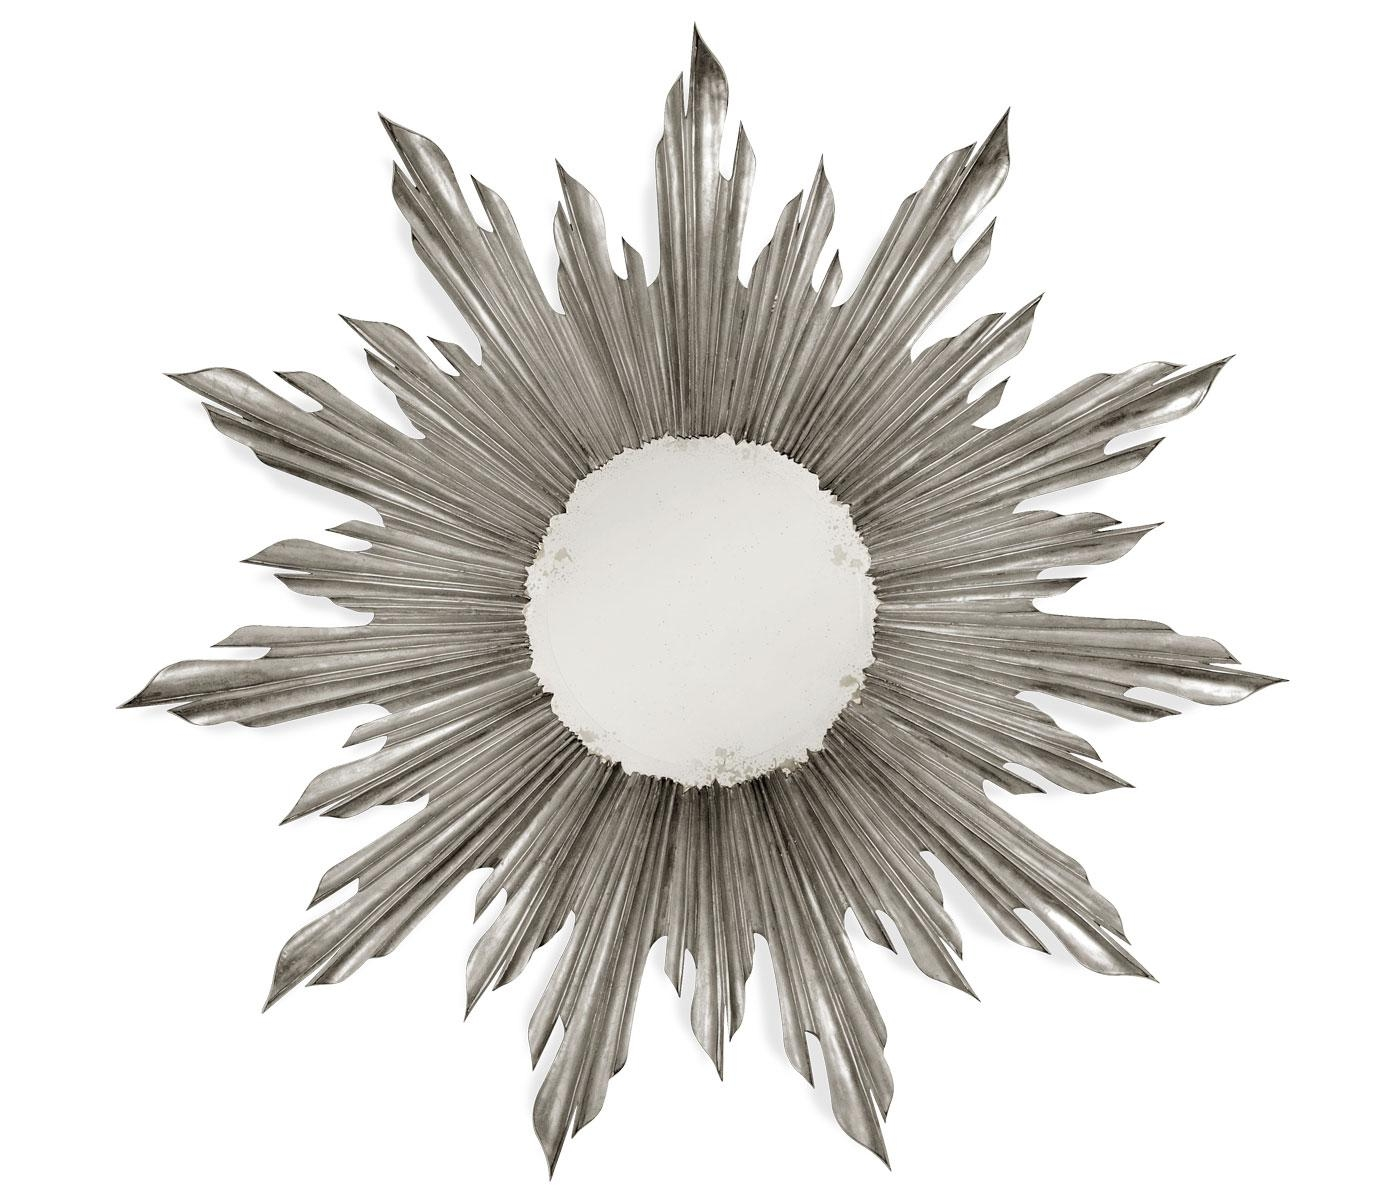 Silver Sunburst Mirror Regarding Small Silver Mirrors (View 3 of 20)